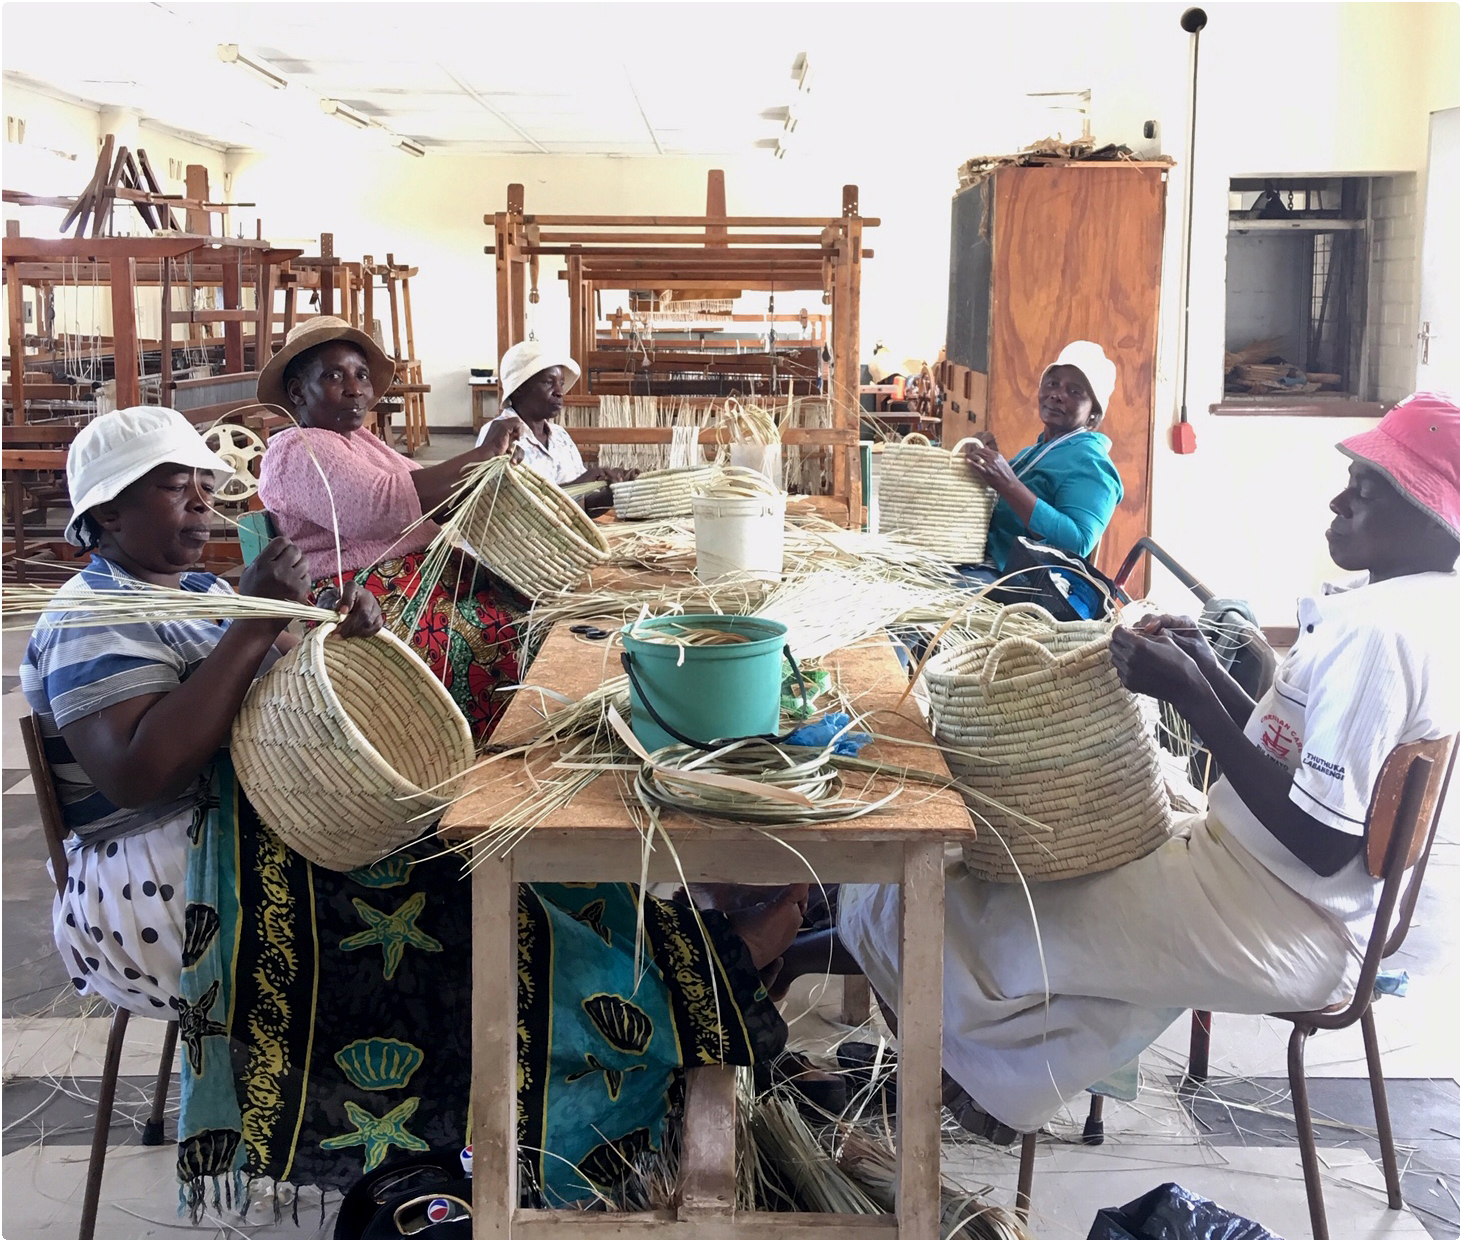 We visited some of the weavers in Zimbabwe and Swaziland. Developping new products together